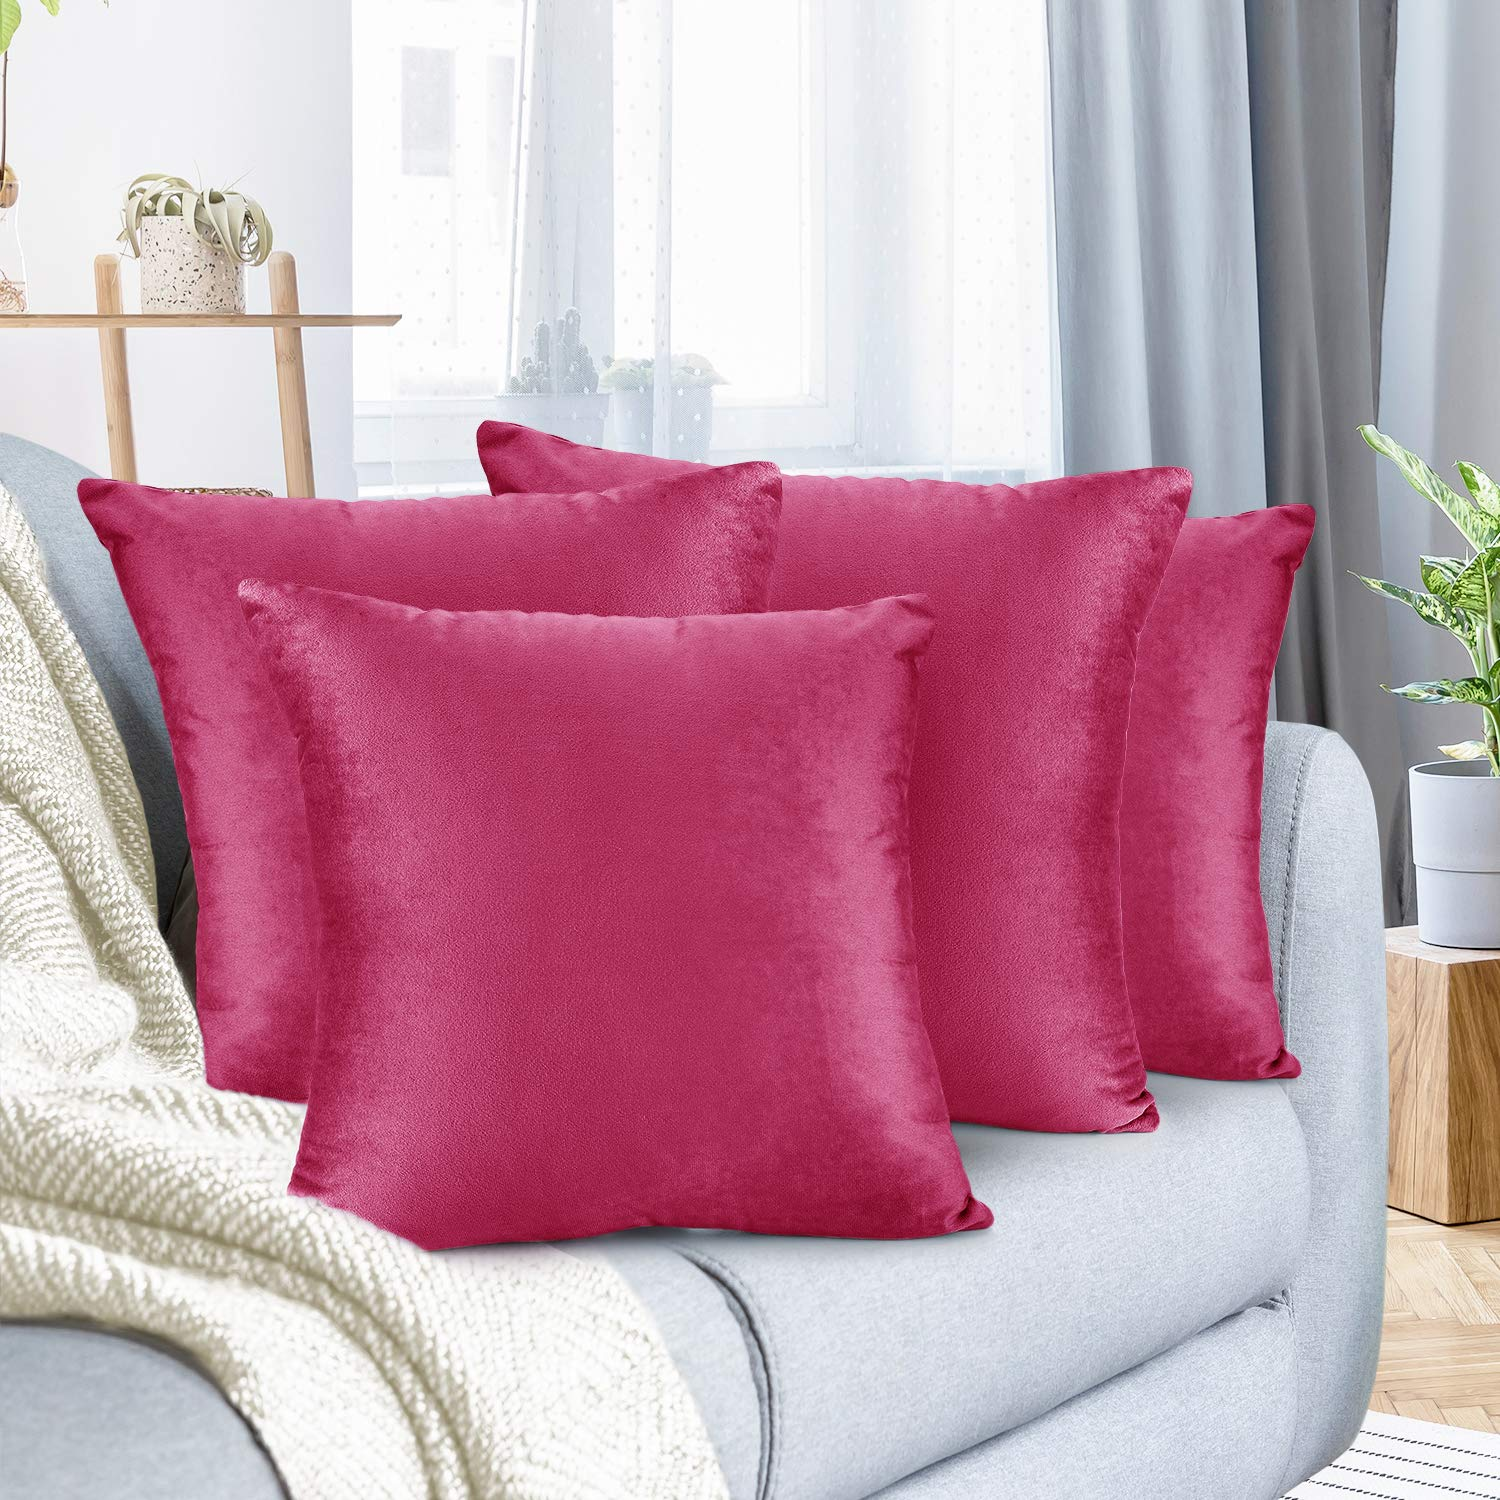 """Nestl Bedding Throw Pillow Cover 26"""" x 26"""" Soft Square Decorative Throw Pillow Covers Cozy Velvet Cushion Case for Sofa Couch Bedroom, Set of 4, Hot Pink"""